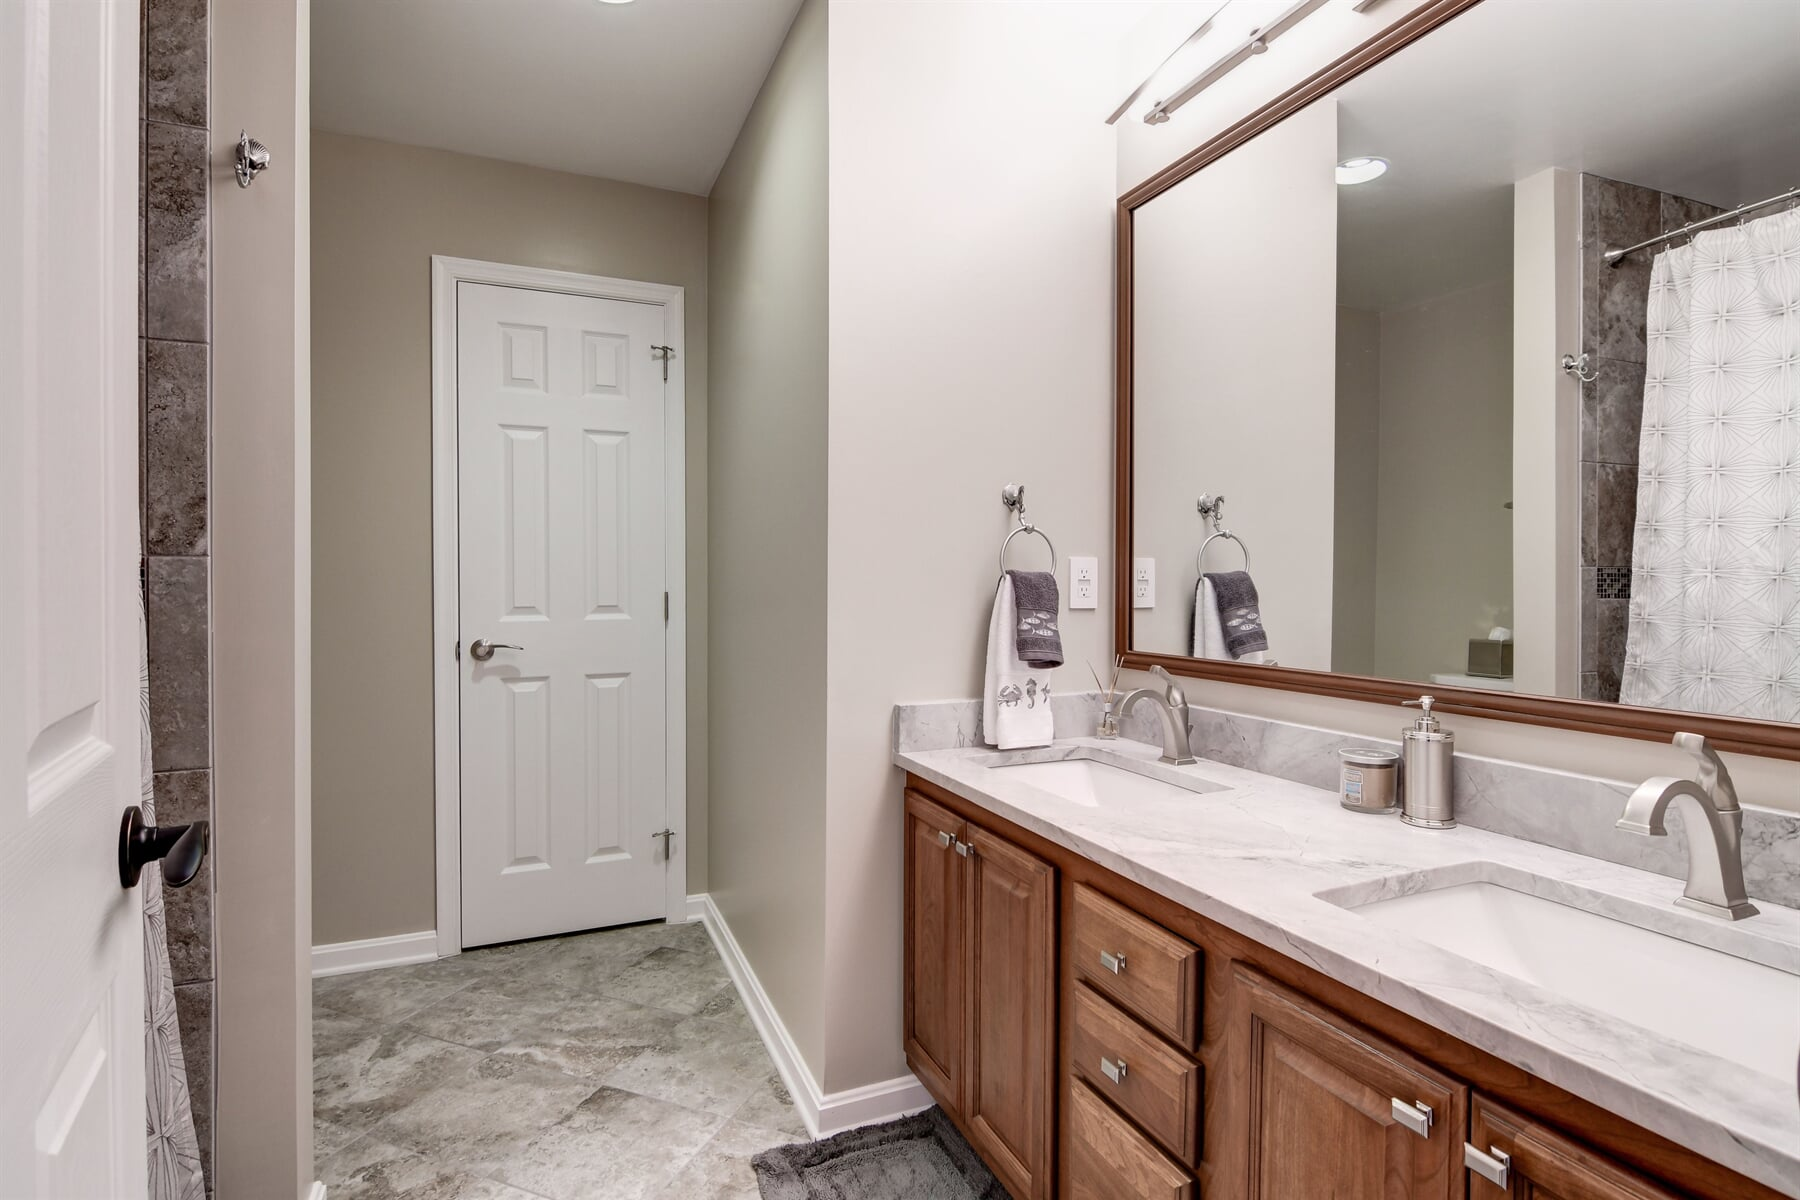 Bathroom remodeling in Huntingtown, MD by Southern Maryland Kitchen, Bath, Floors & Design